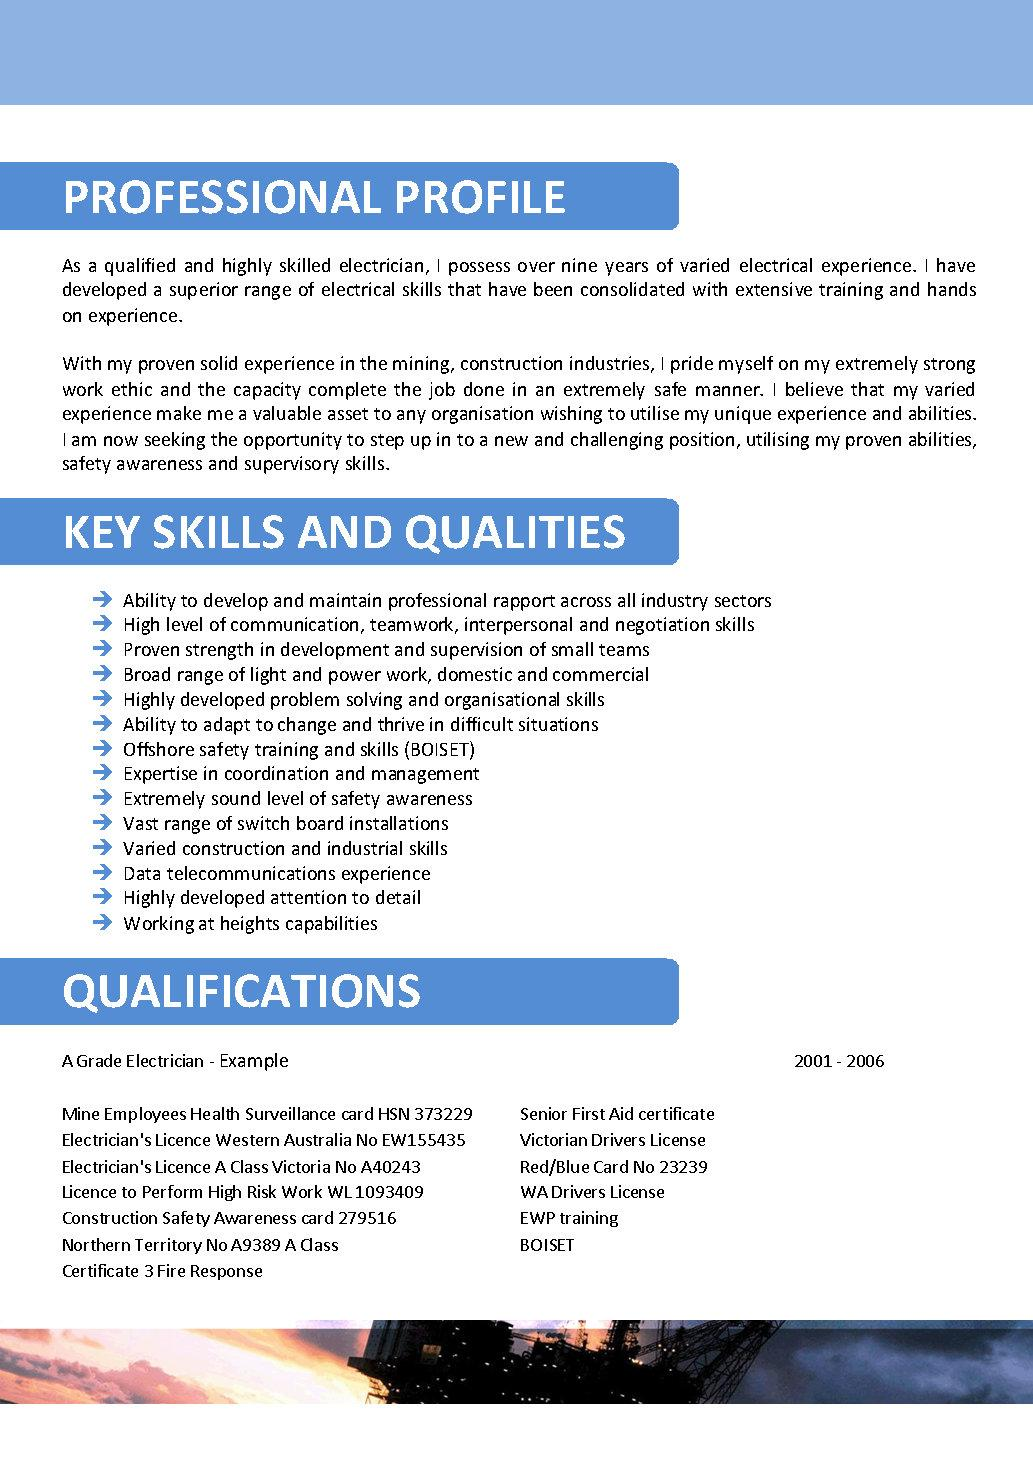 resume for mining electrician online resume format resume for mining electrician mining electrician resume example silver standard mining resume template resume templates offshore